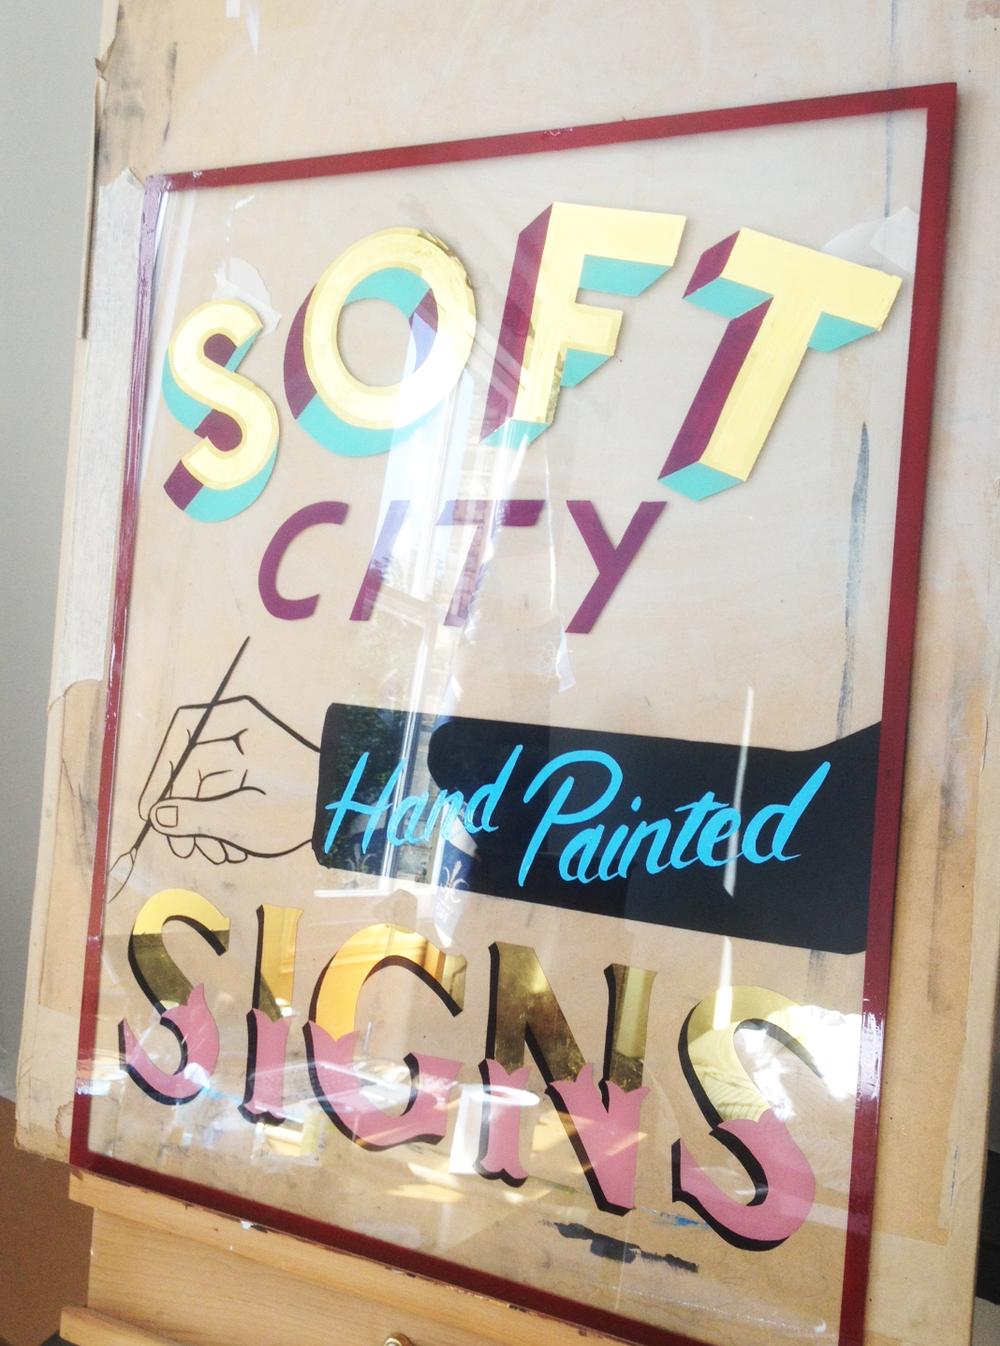 softcitygild1 copy.jpg